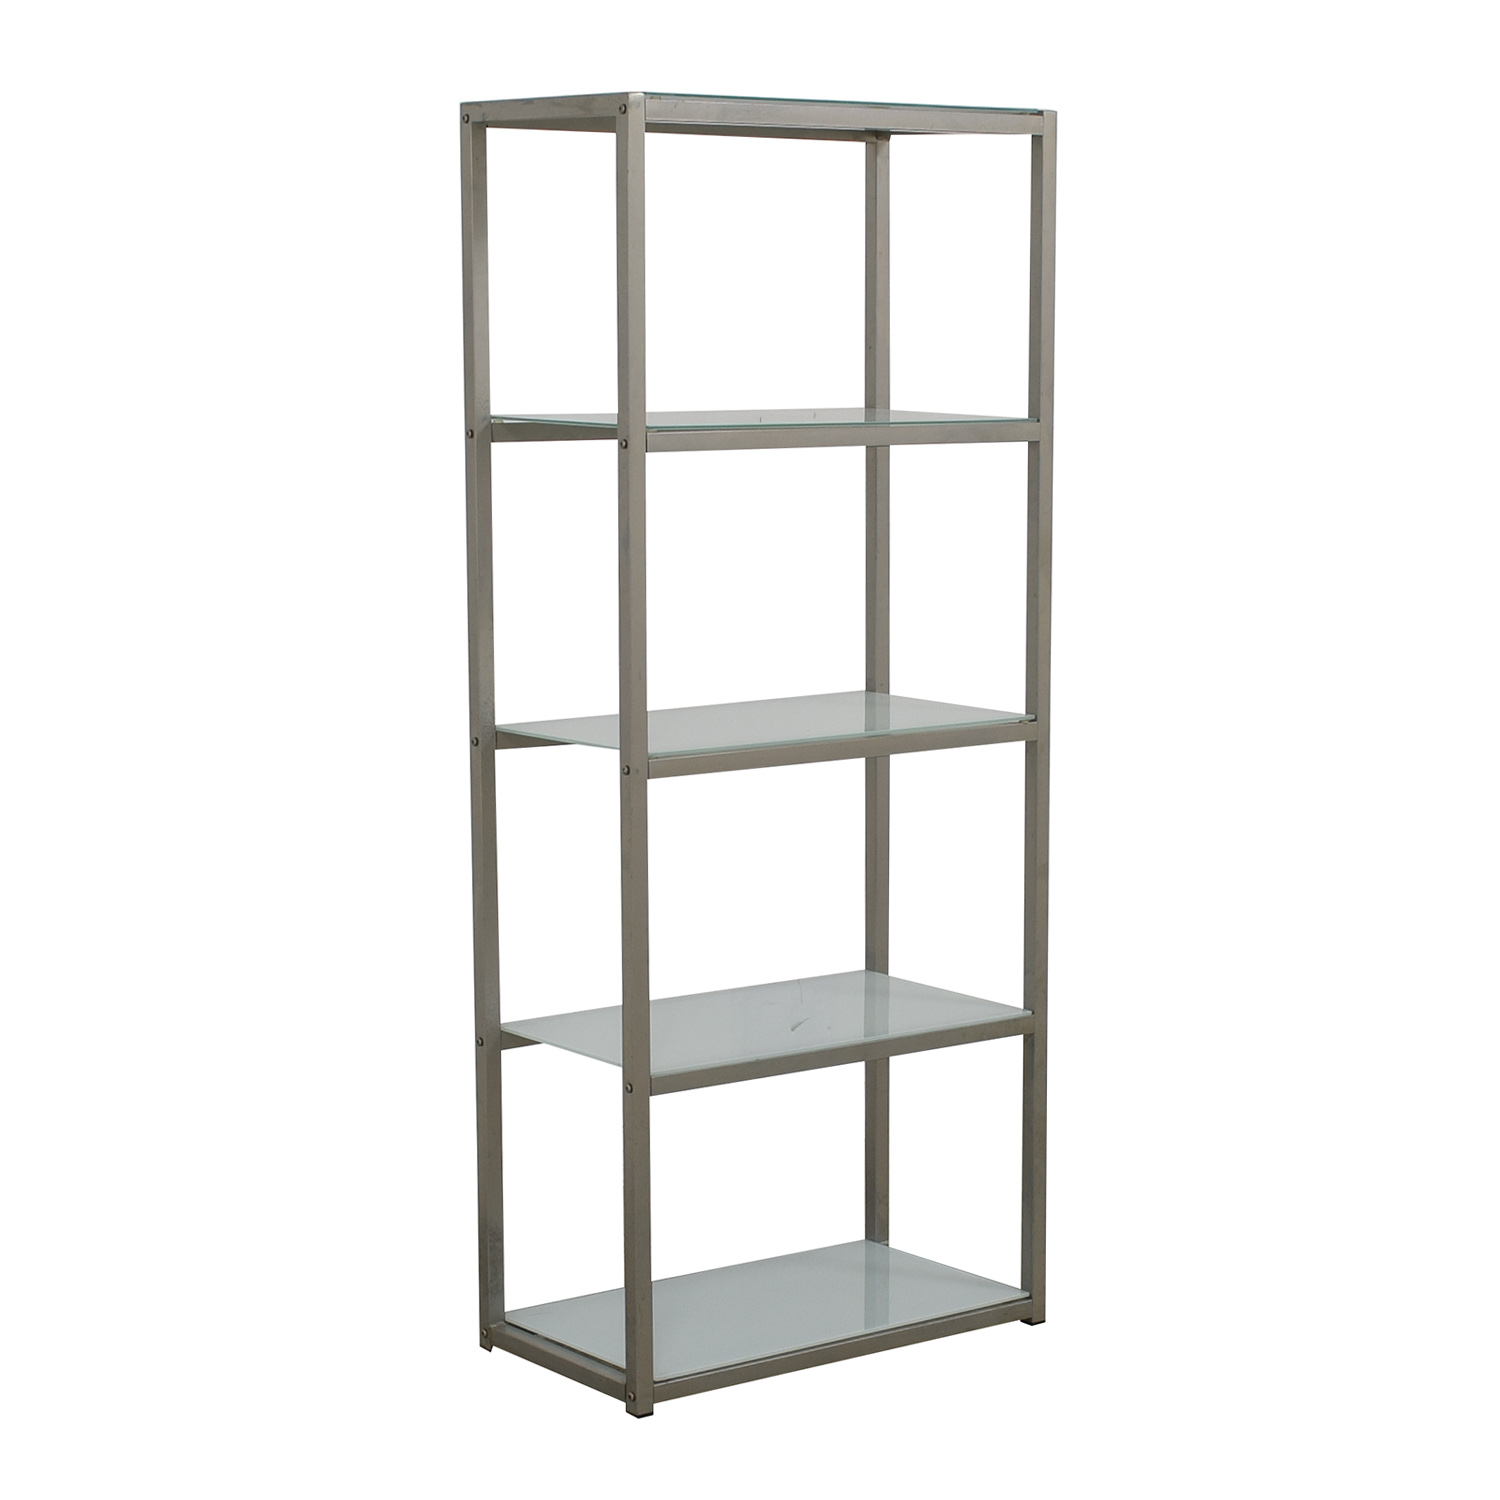 shop Crate & Barrel Pilsen Glass and Chrome Shelves Crate & Barrel Bookcases & Shelving